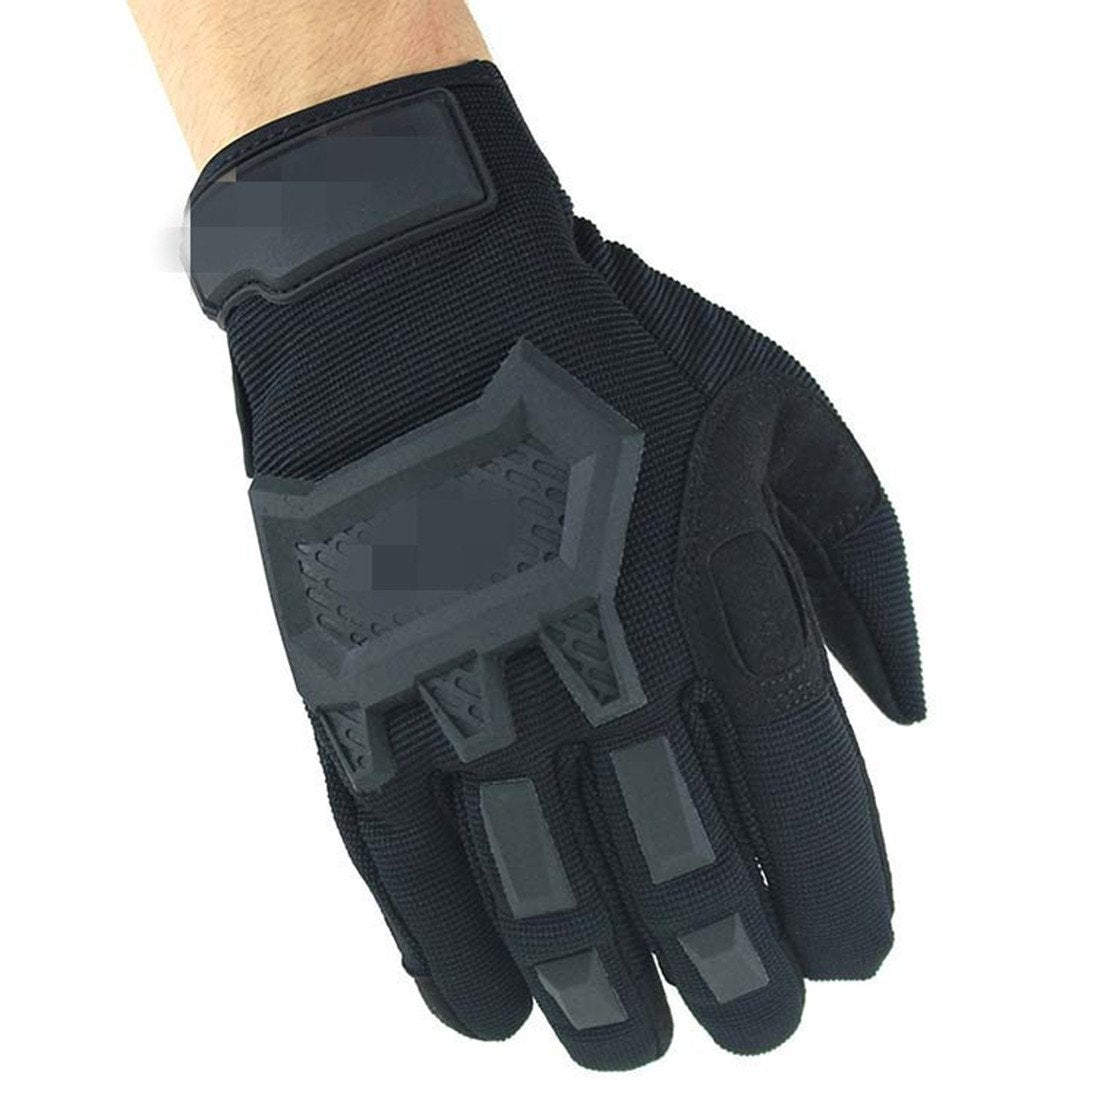 Full-fingered Breathable Anti-skid Protective Gloves